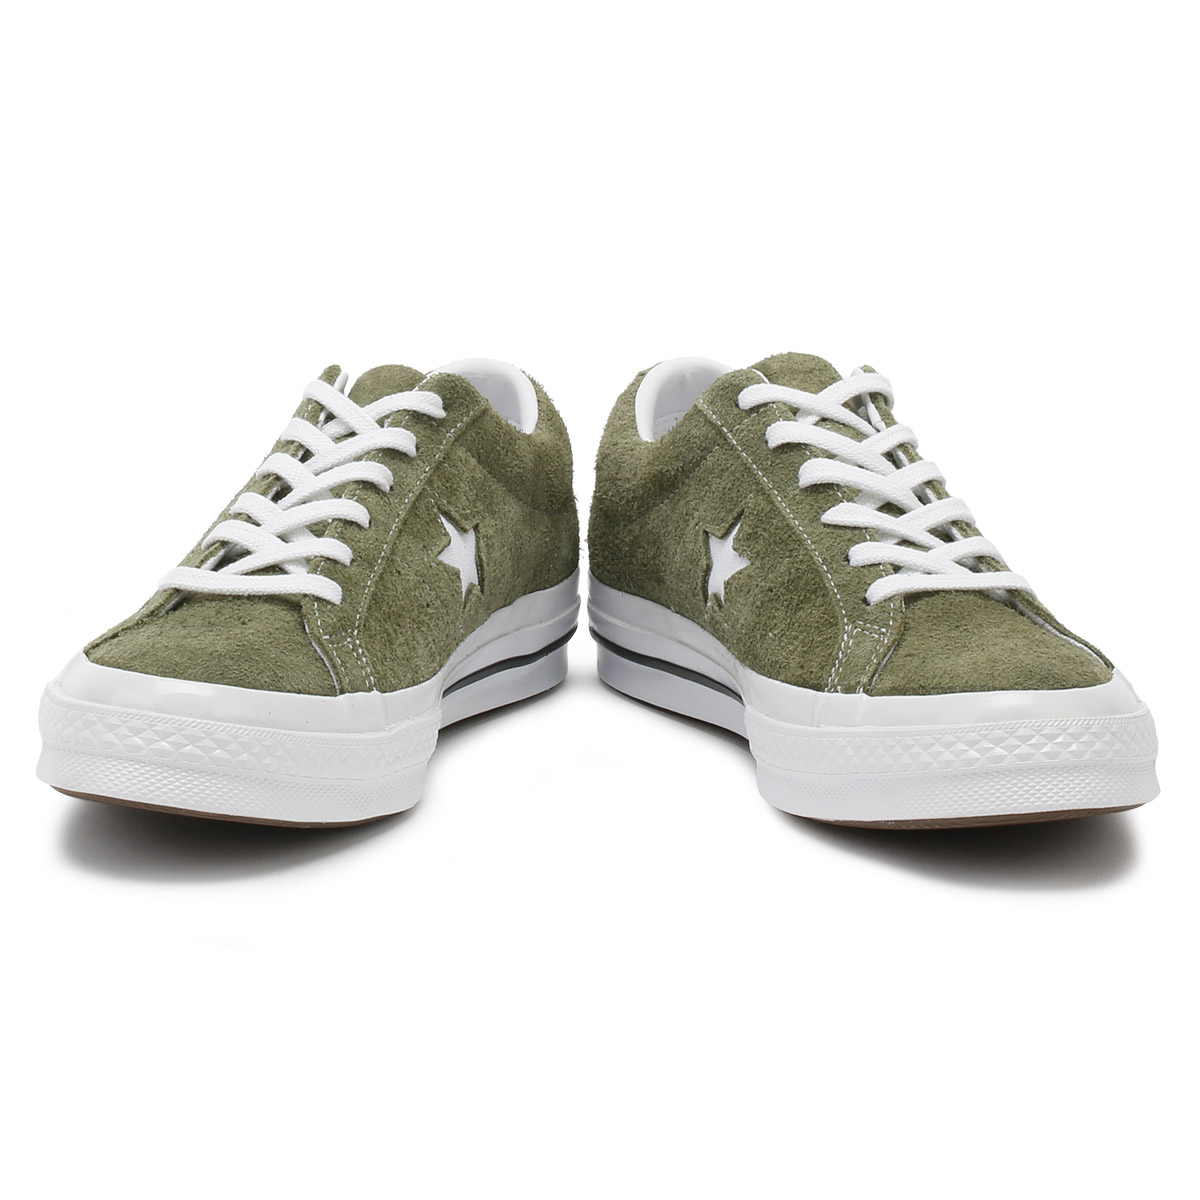 24666146eeb Converse One Star Mens Trainers Field Surplus Green Suede Ox Sport Casual  Shoes